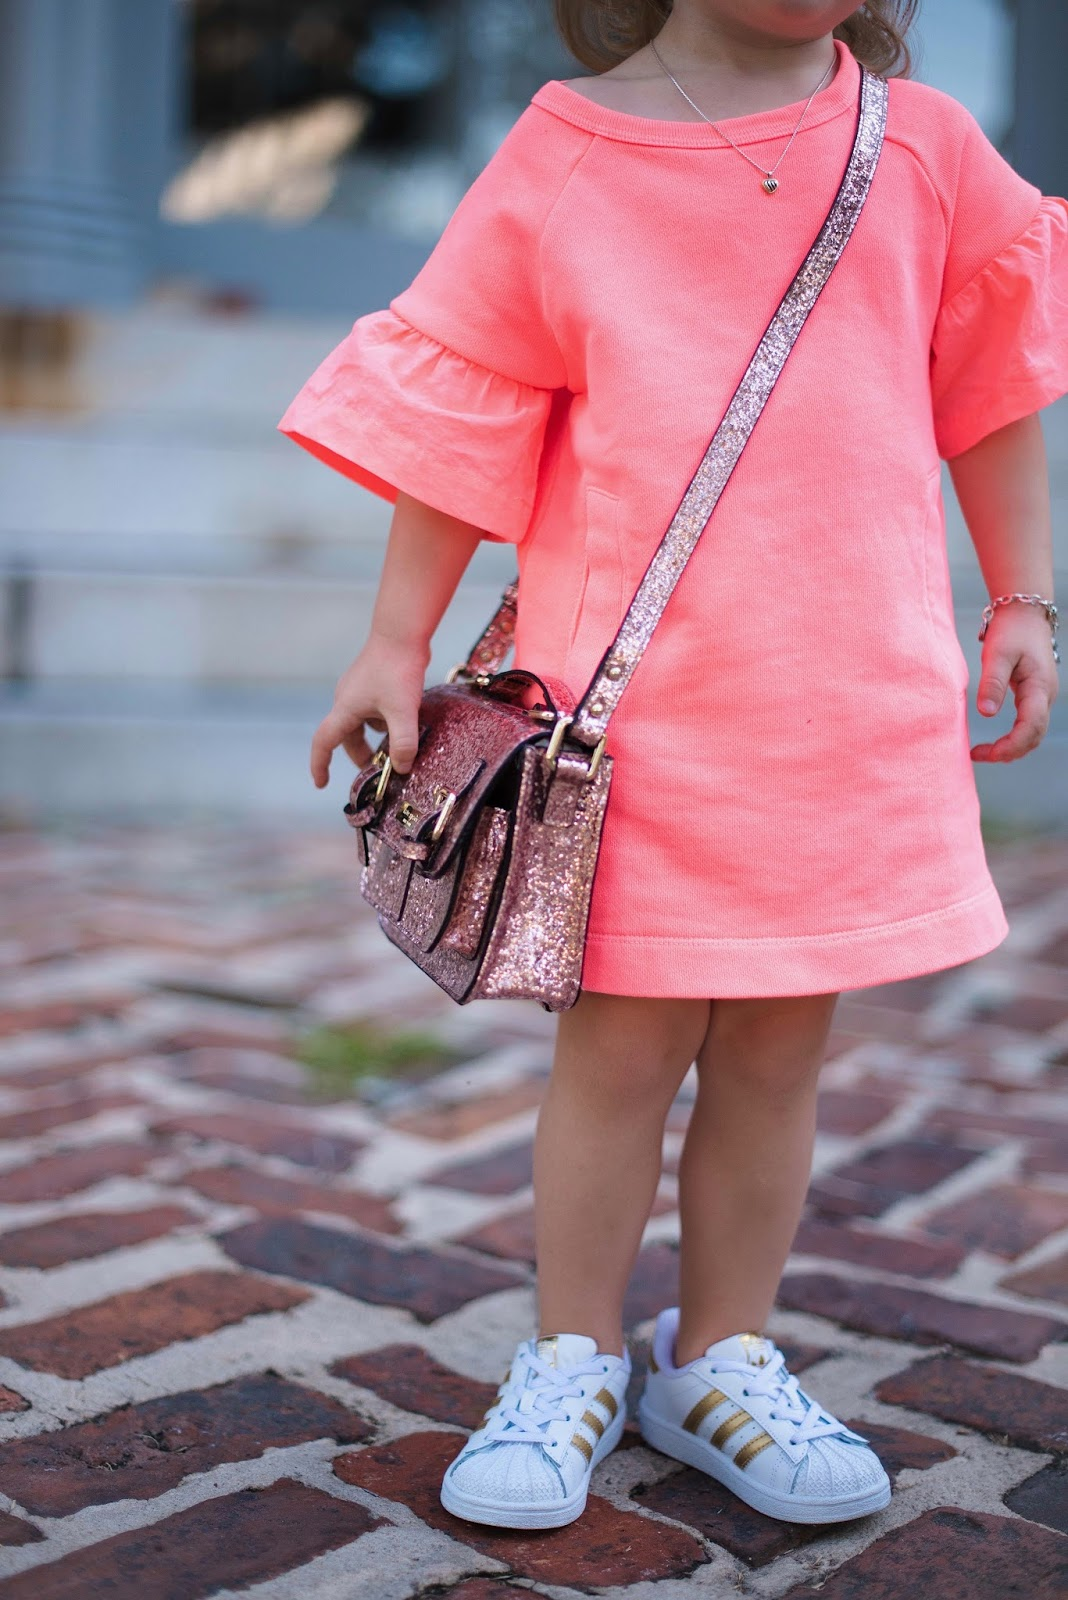 Toddler Fashion in Kate Spade and J.Crew - Something Delightful Blog